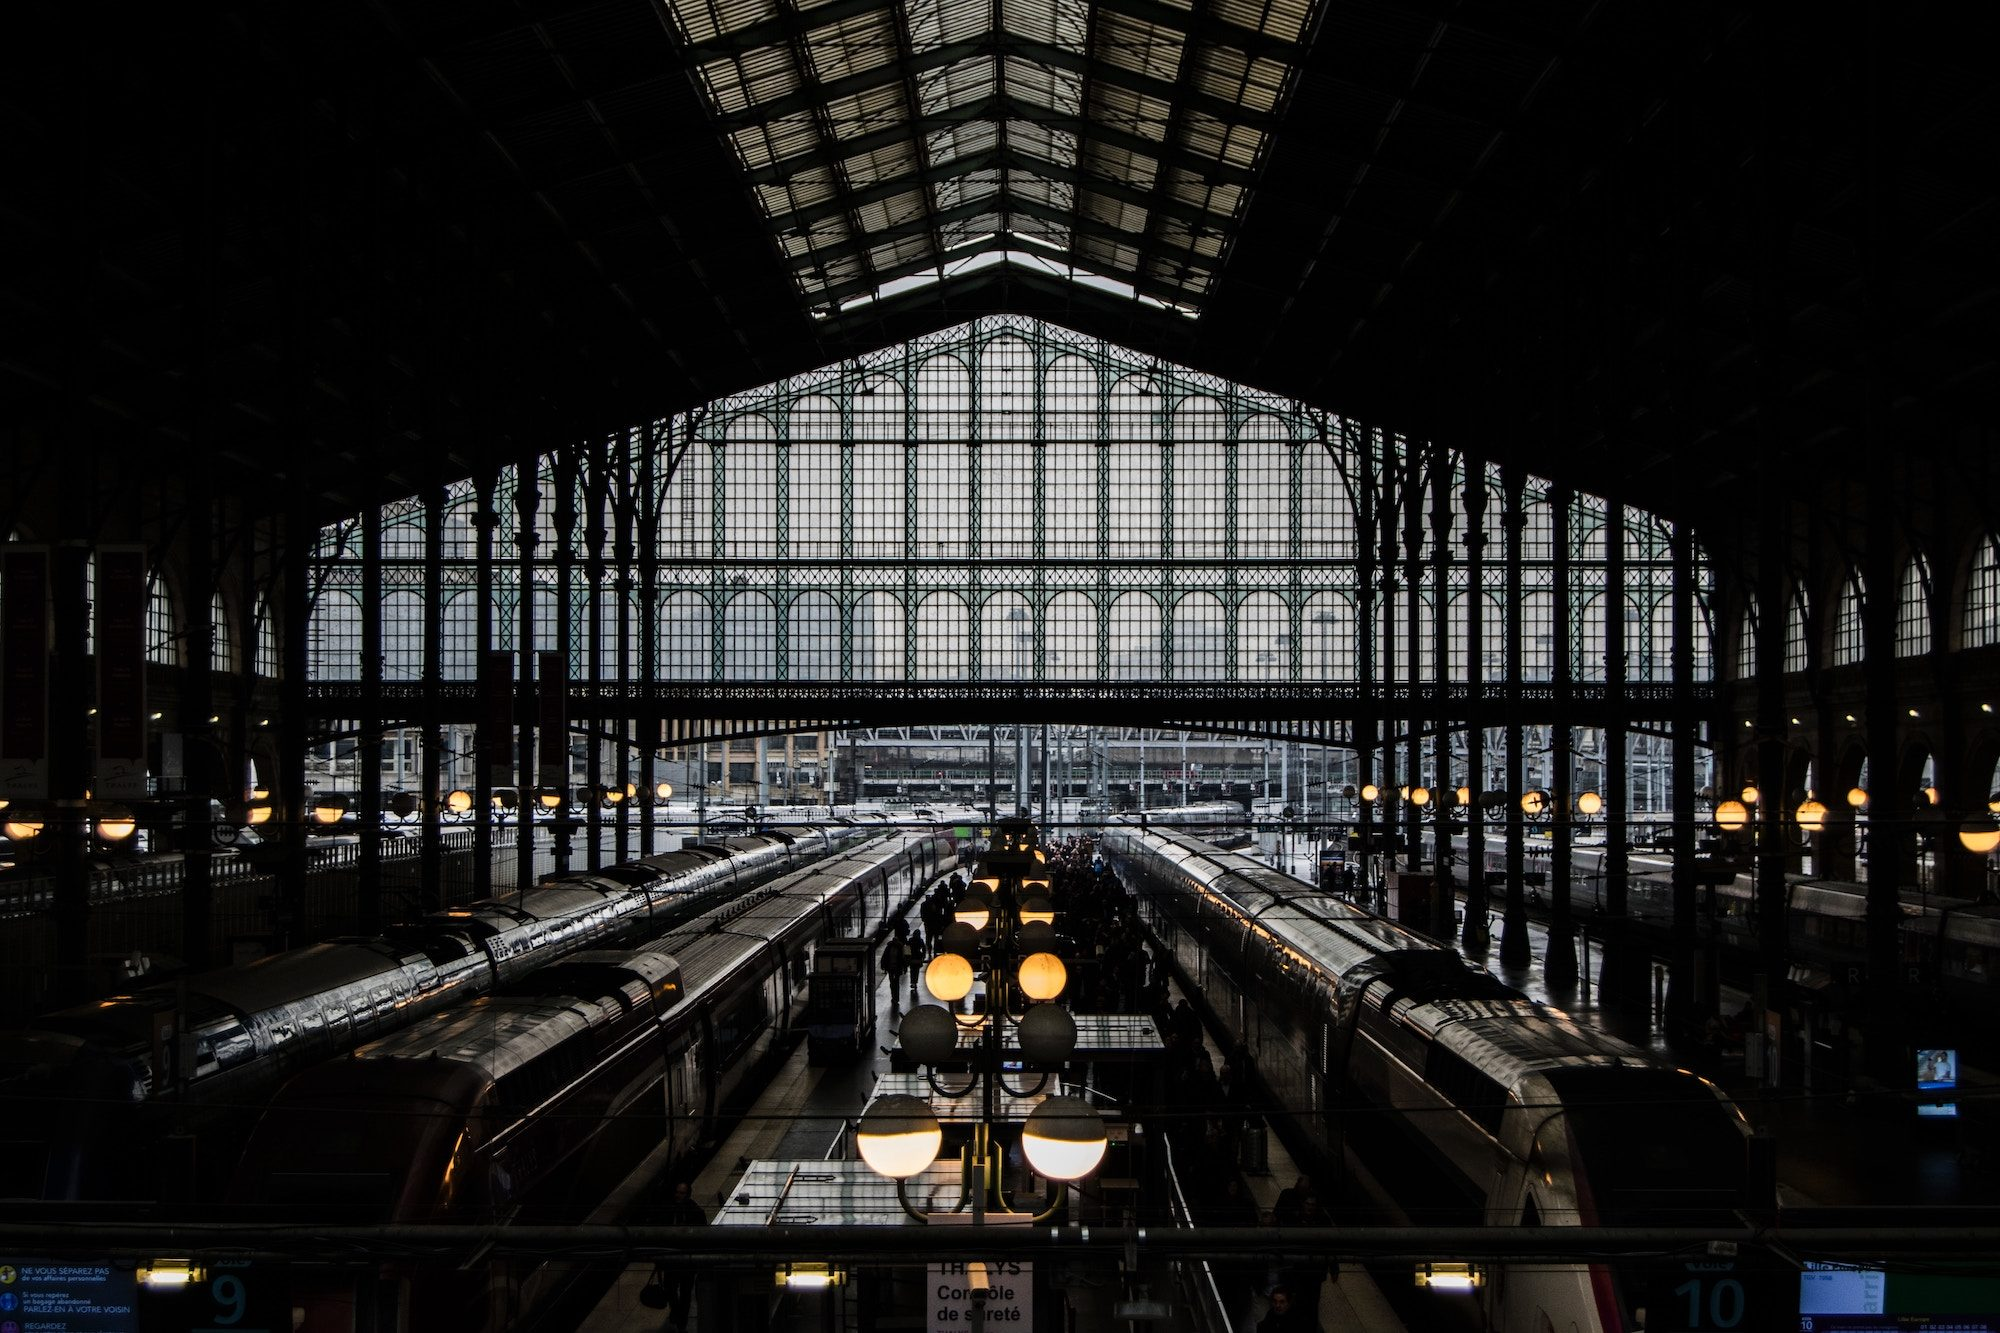 A shadowed view of trains waiting at the platforms of the Gare du station with its Art nouveau glass and iron structure.